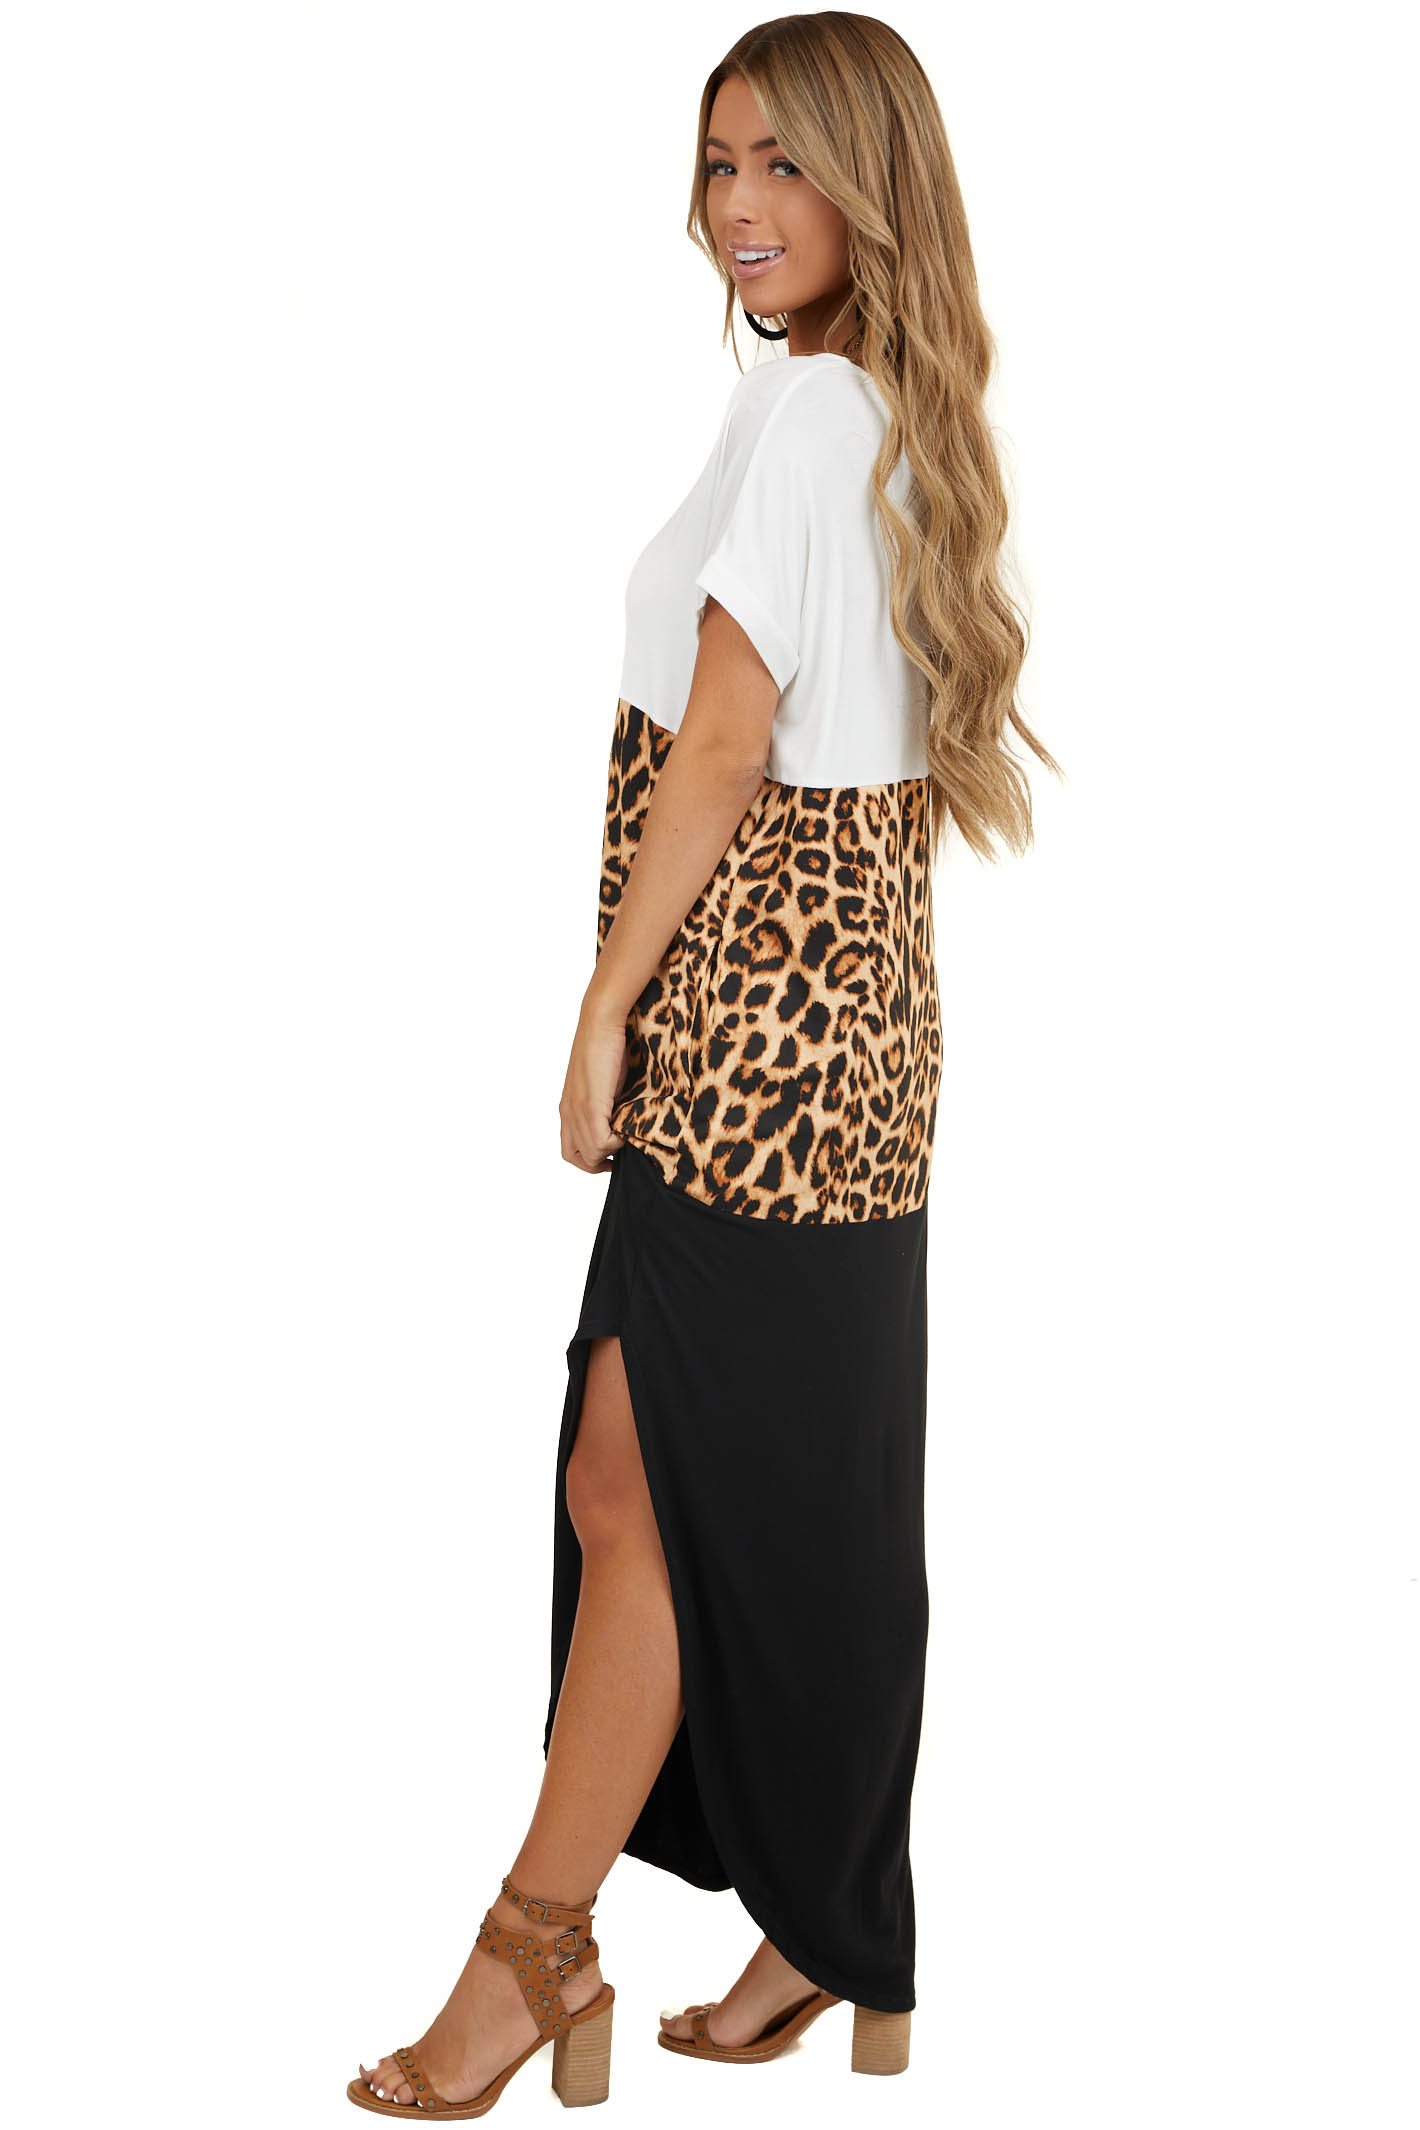 Ivory and Black Leopard Print Color Block Maxi Dress